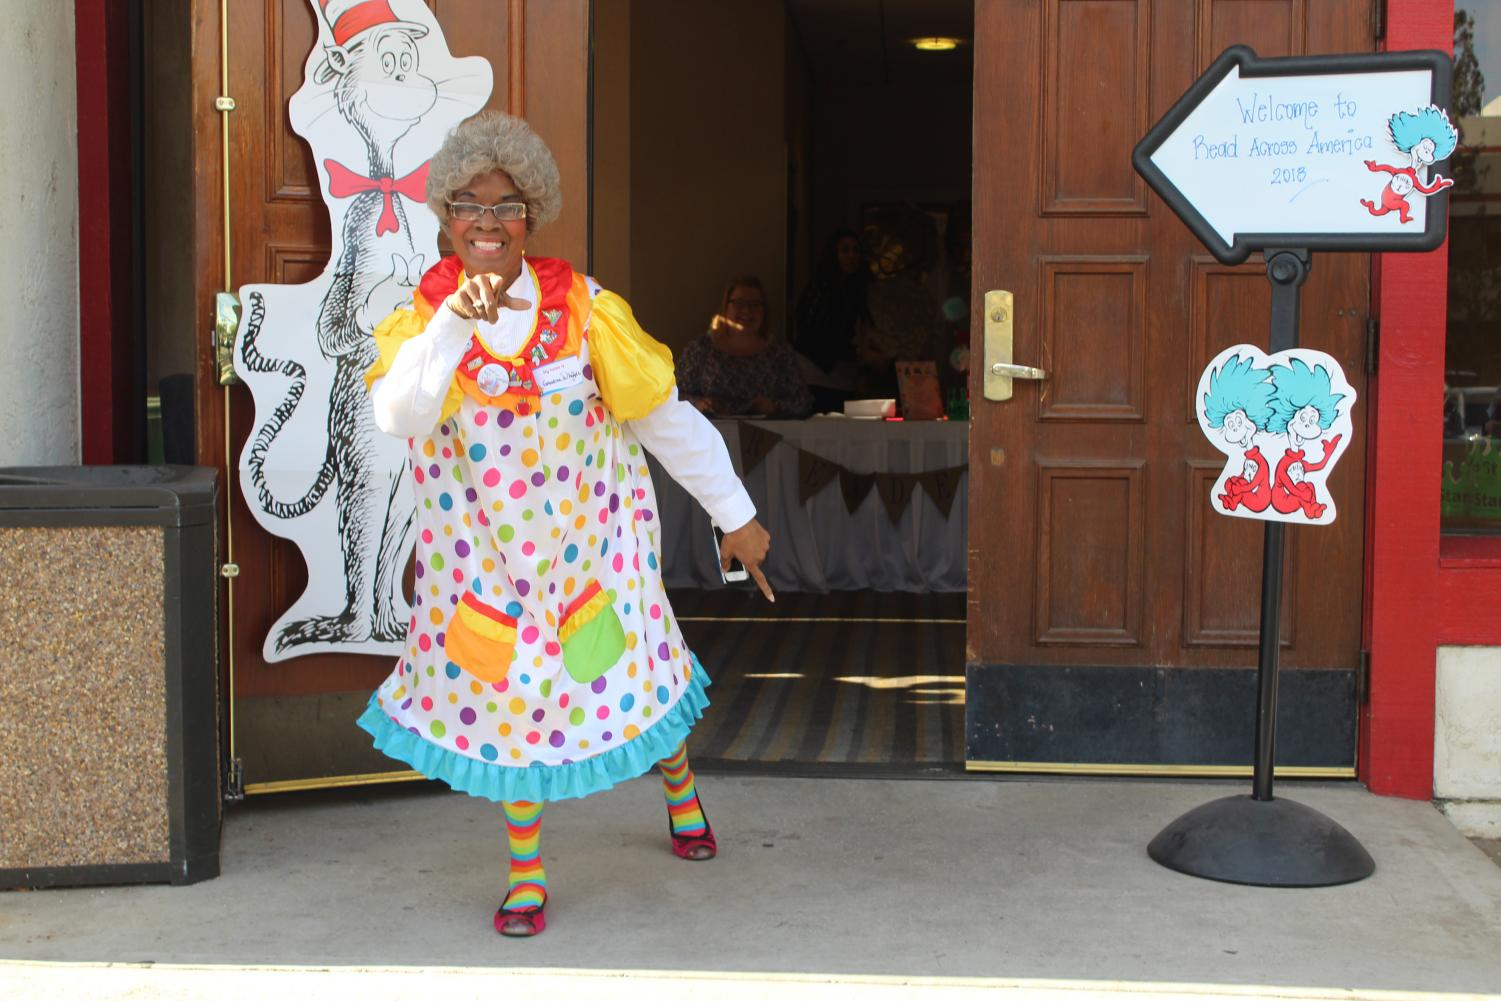 Grandma Whoople having a bit of fun before the CAPK Read Across America ceremony ends.